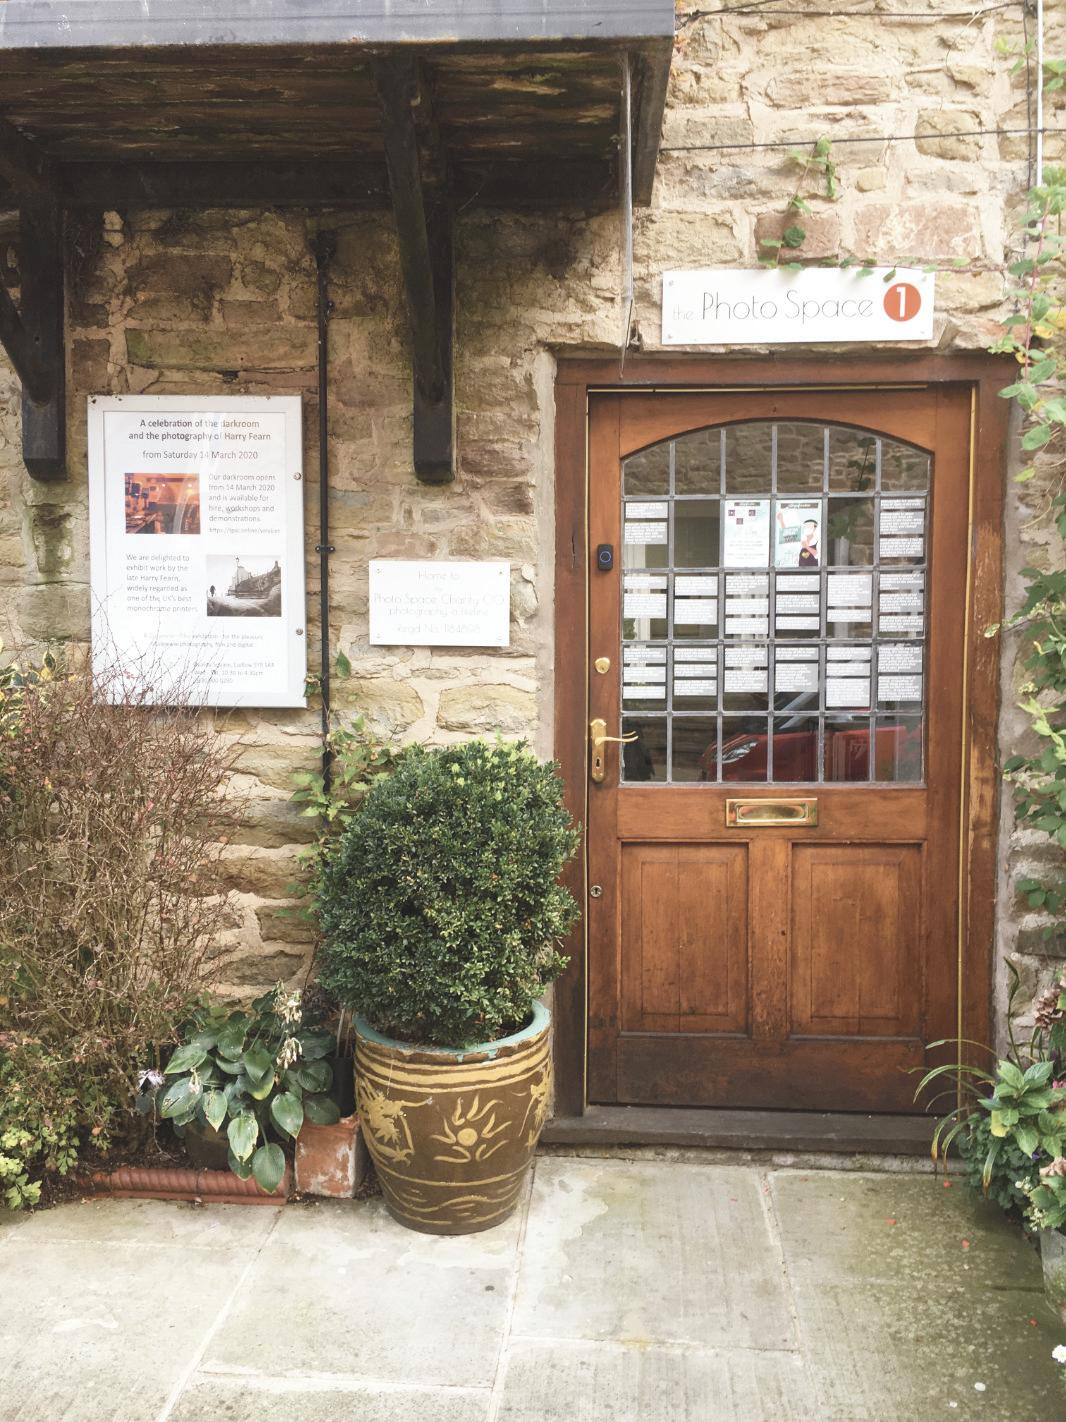 Page 12 of The Print Space We visit a gallery and darkroom in one of England's historic market towns